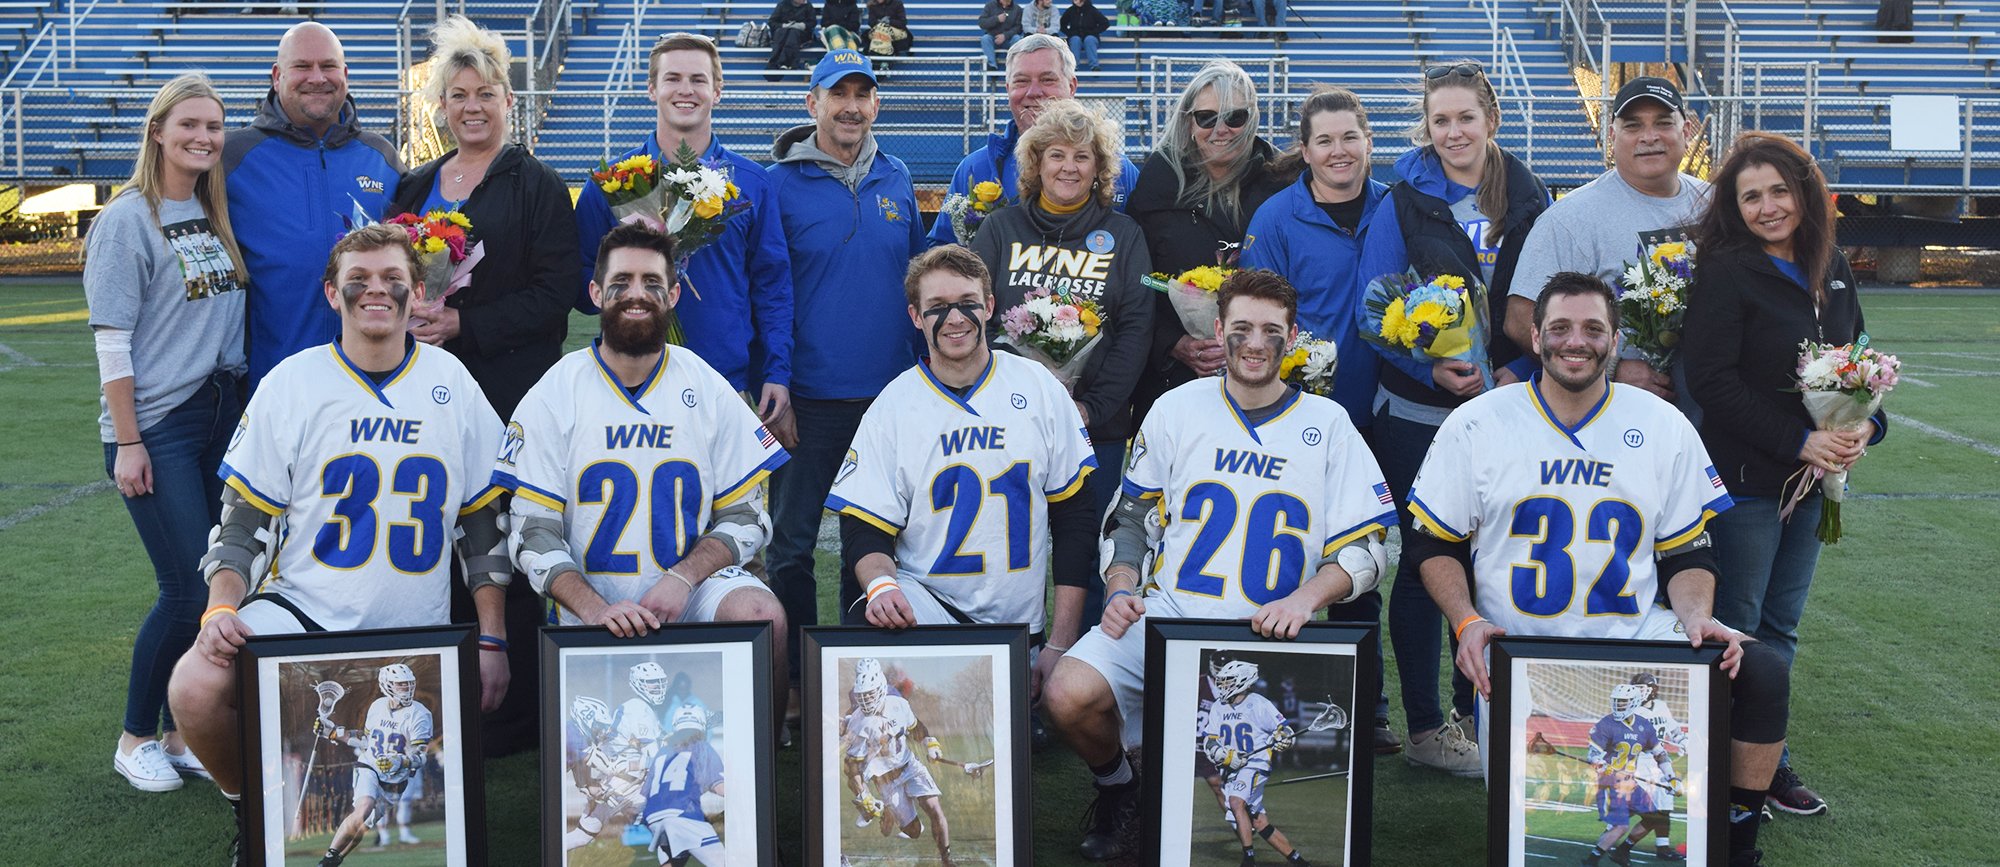 Western New England Celebrates Senior Night with 19-8 Victory over Salve Regina